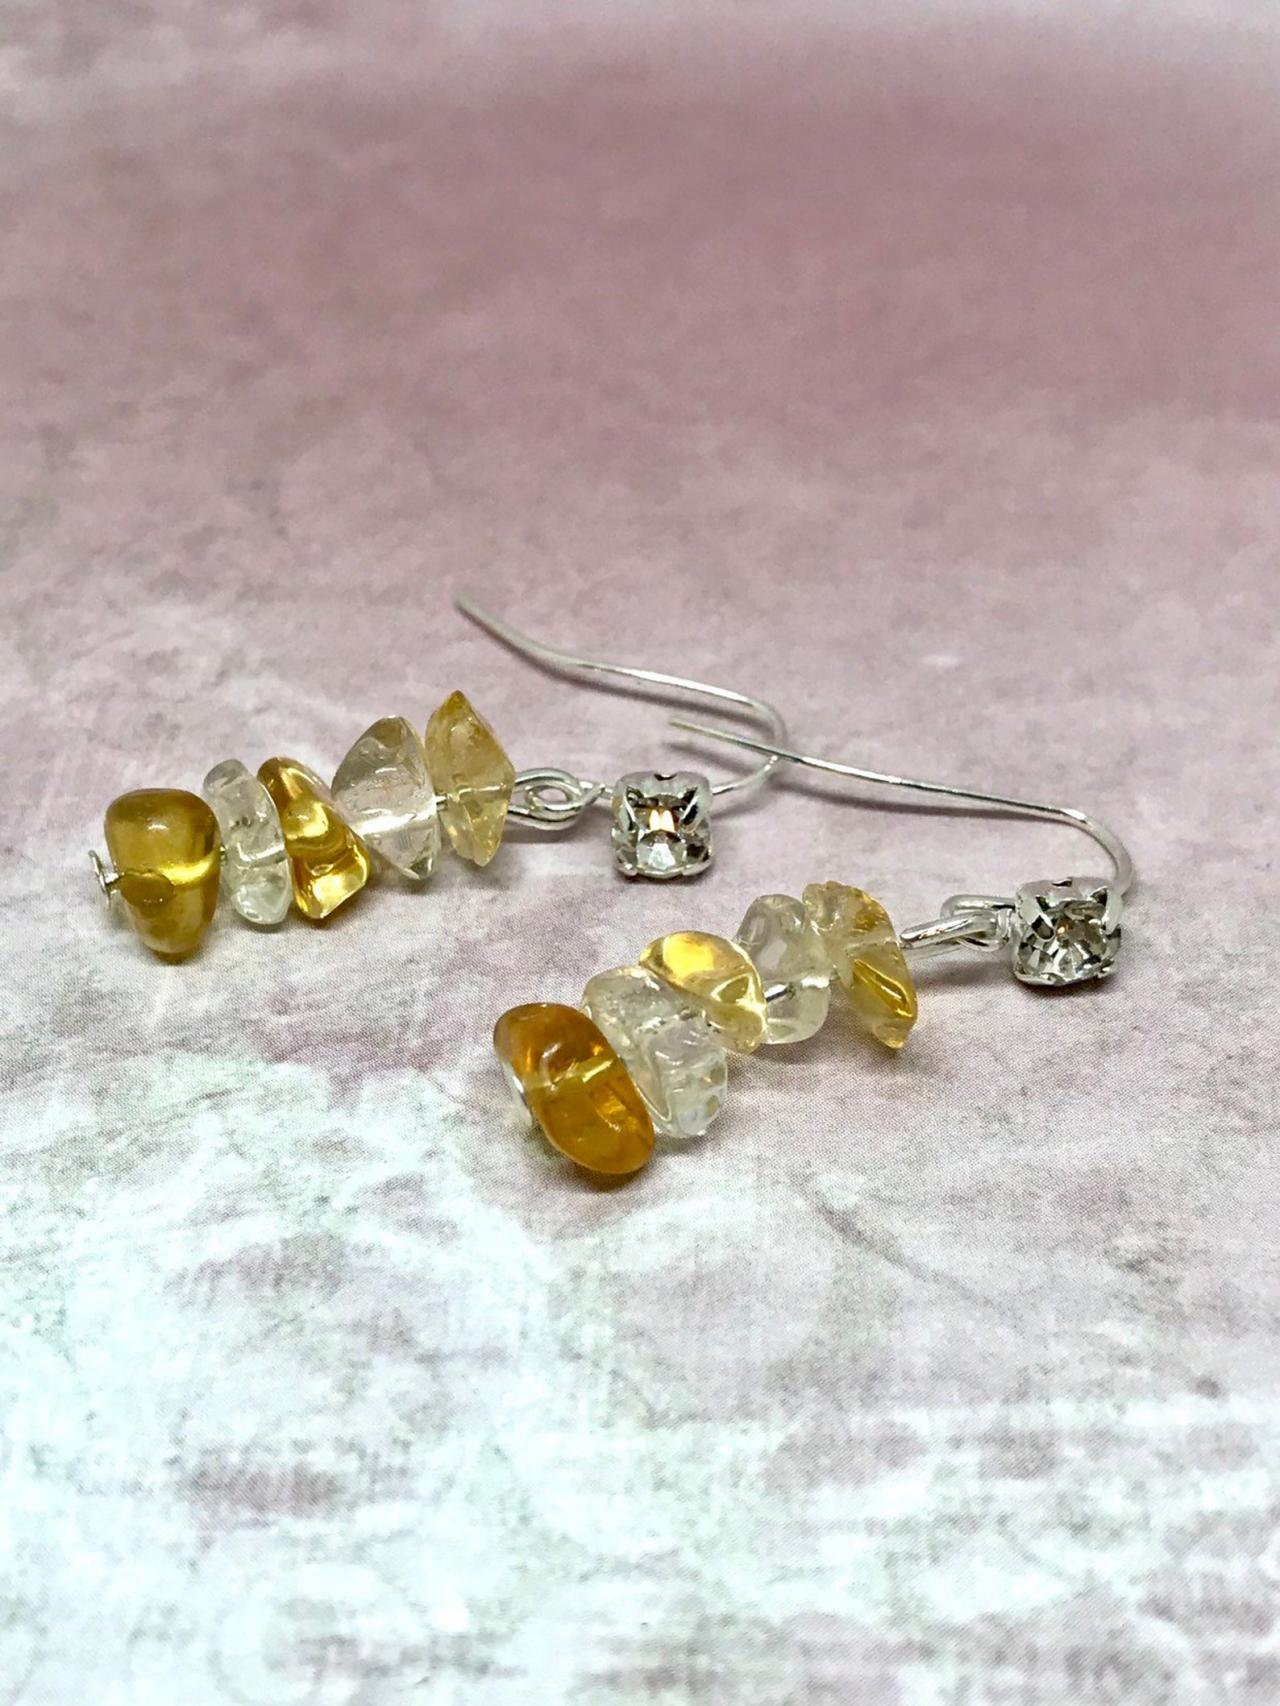 Drop earrings with citrine Quartz and a diamante stone